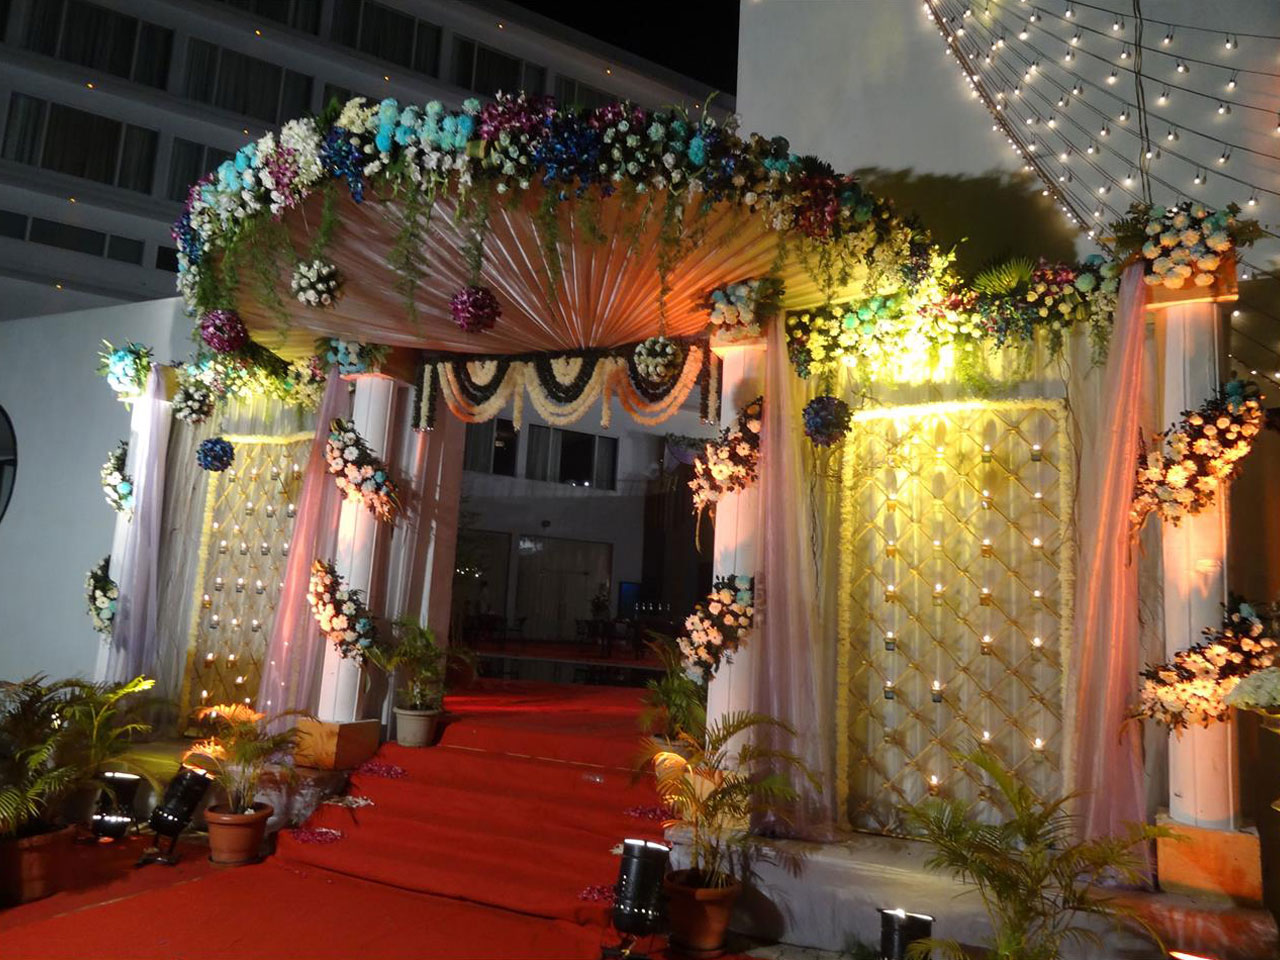 Wedding decoration images in mumbai national decorators in mumbai wedding decoration images in mumbai mumbai indian wedding reception decorators and planners junglespirit Gallery